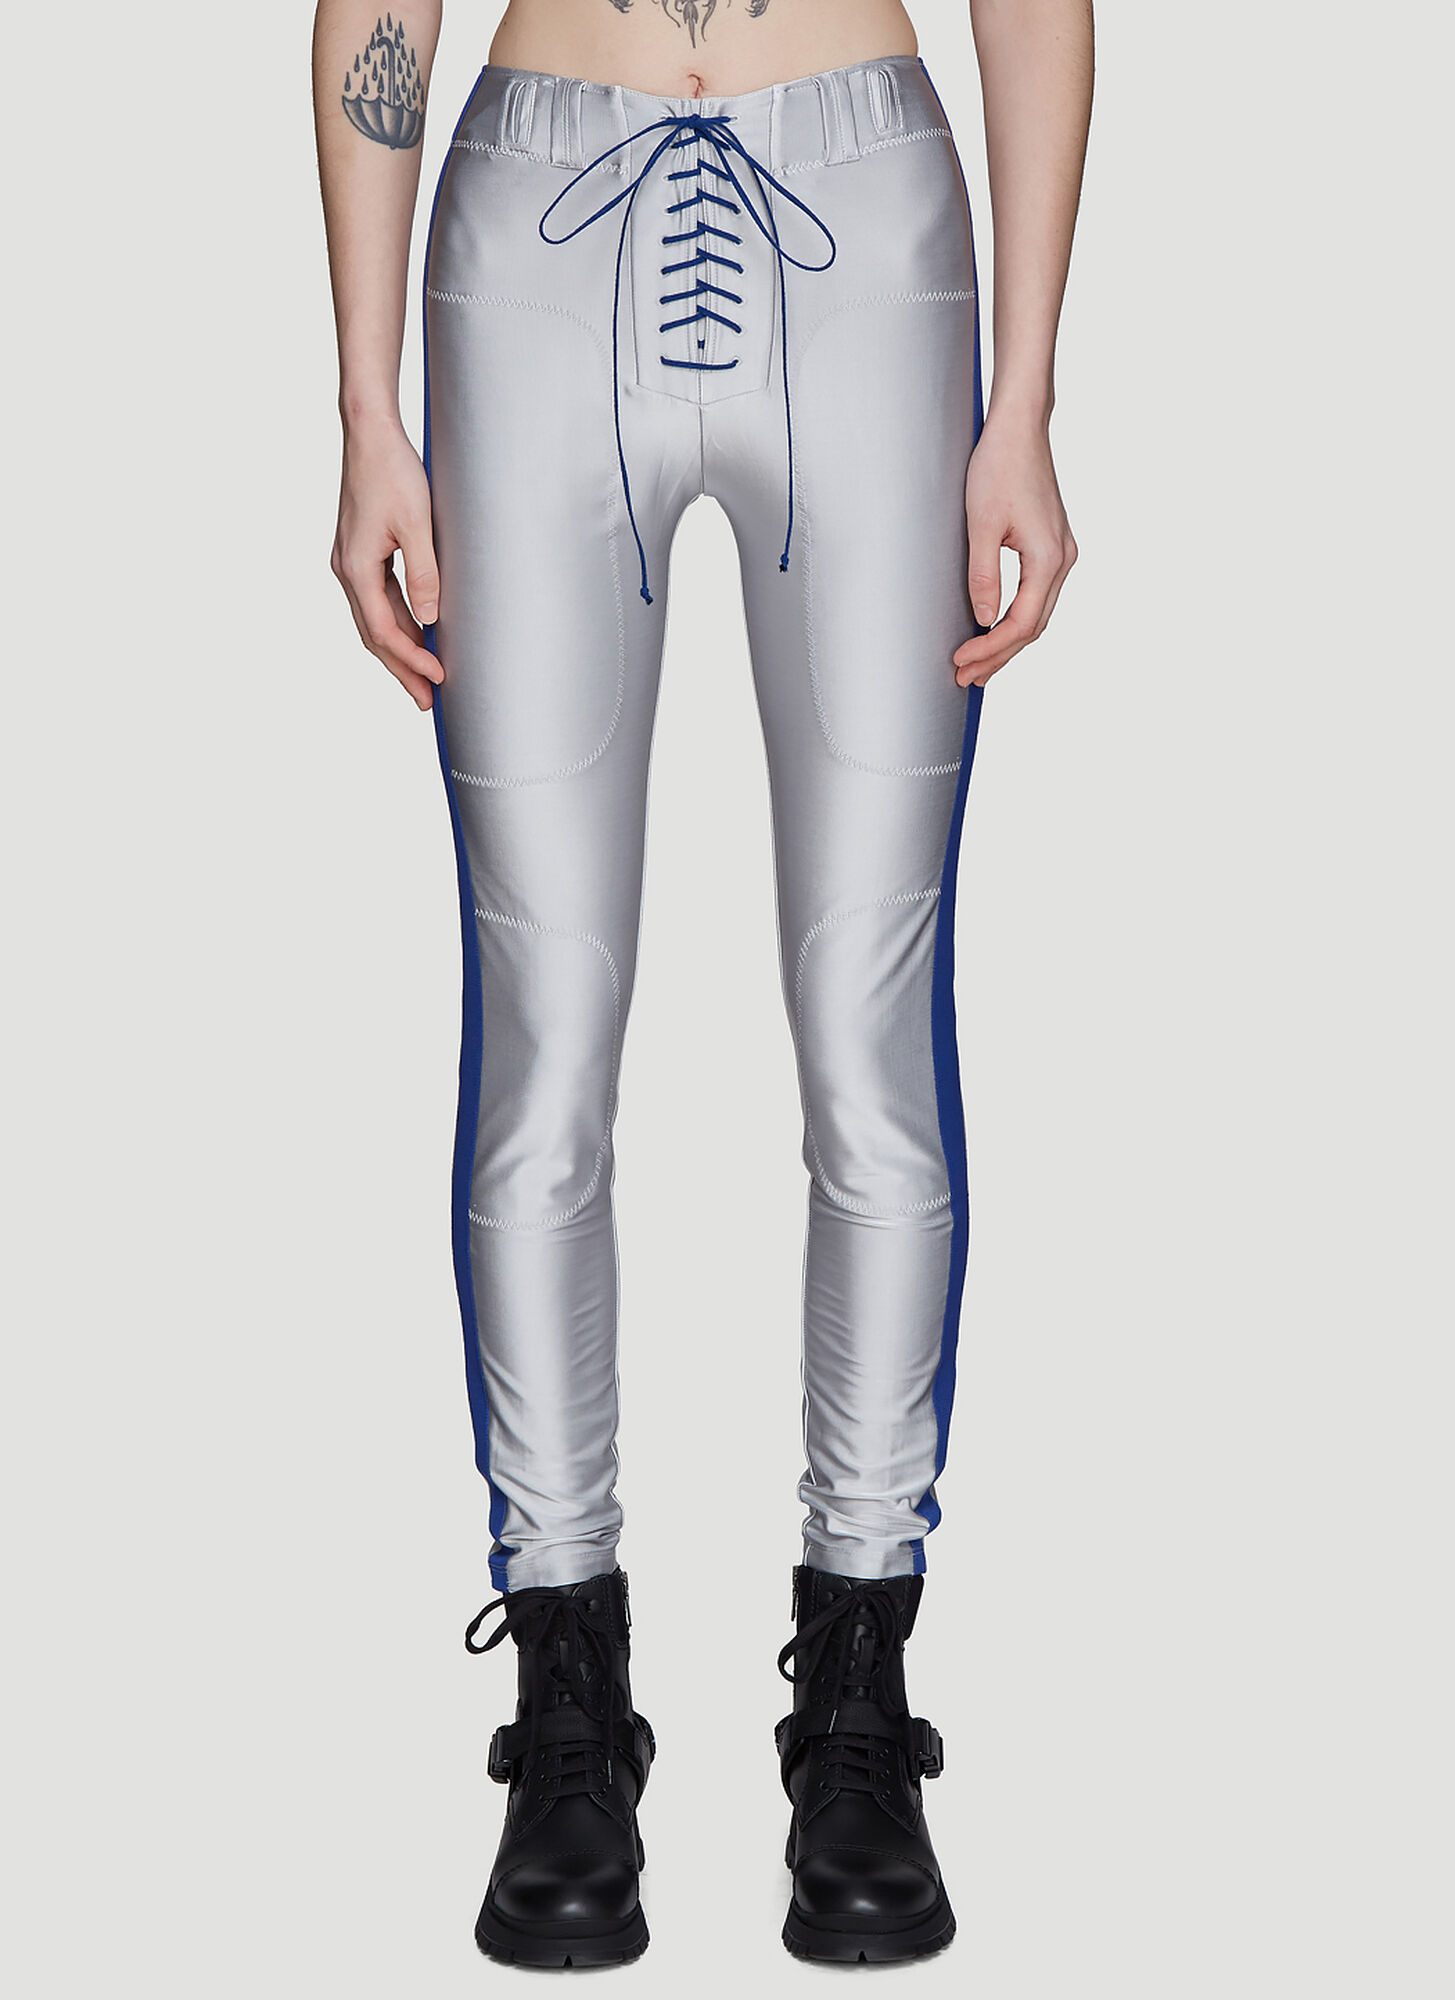 Photo of Unravel Project Lace-up Metallic Pants in Silver - Unravel Project Leggings